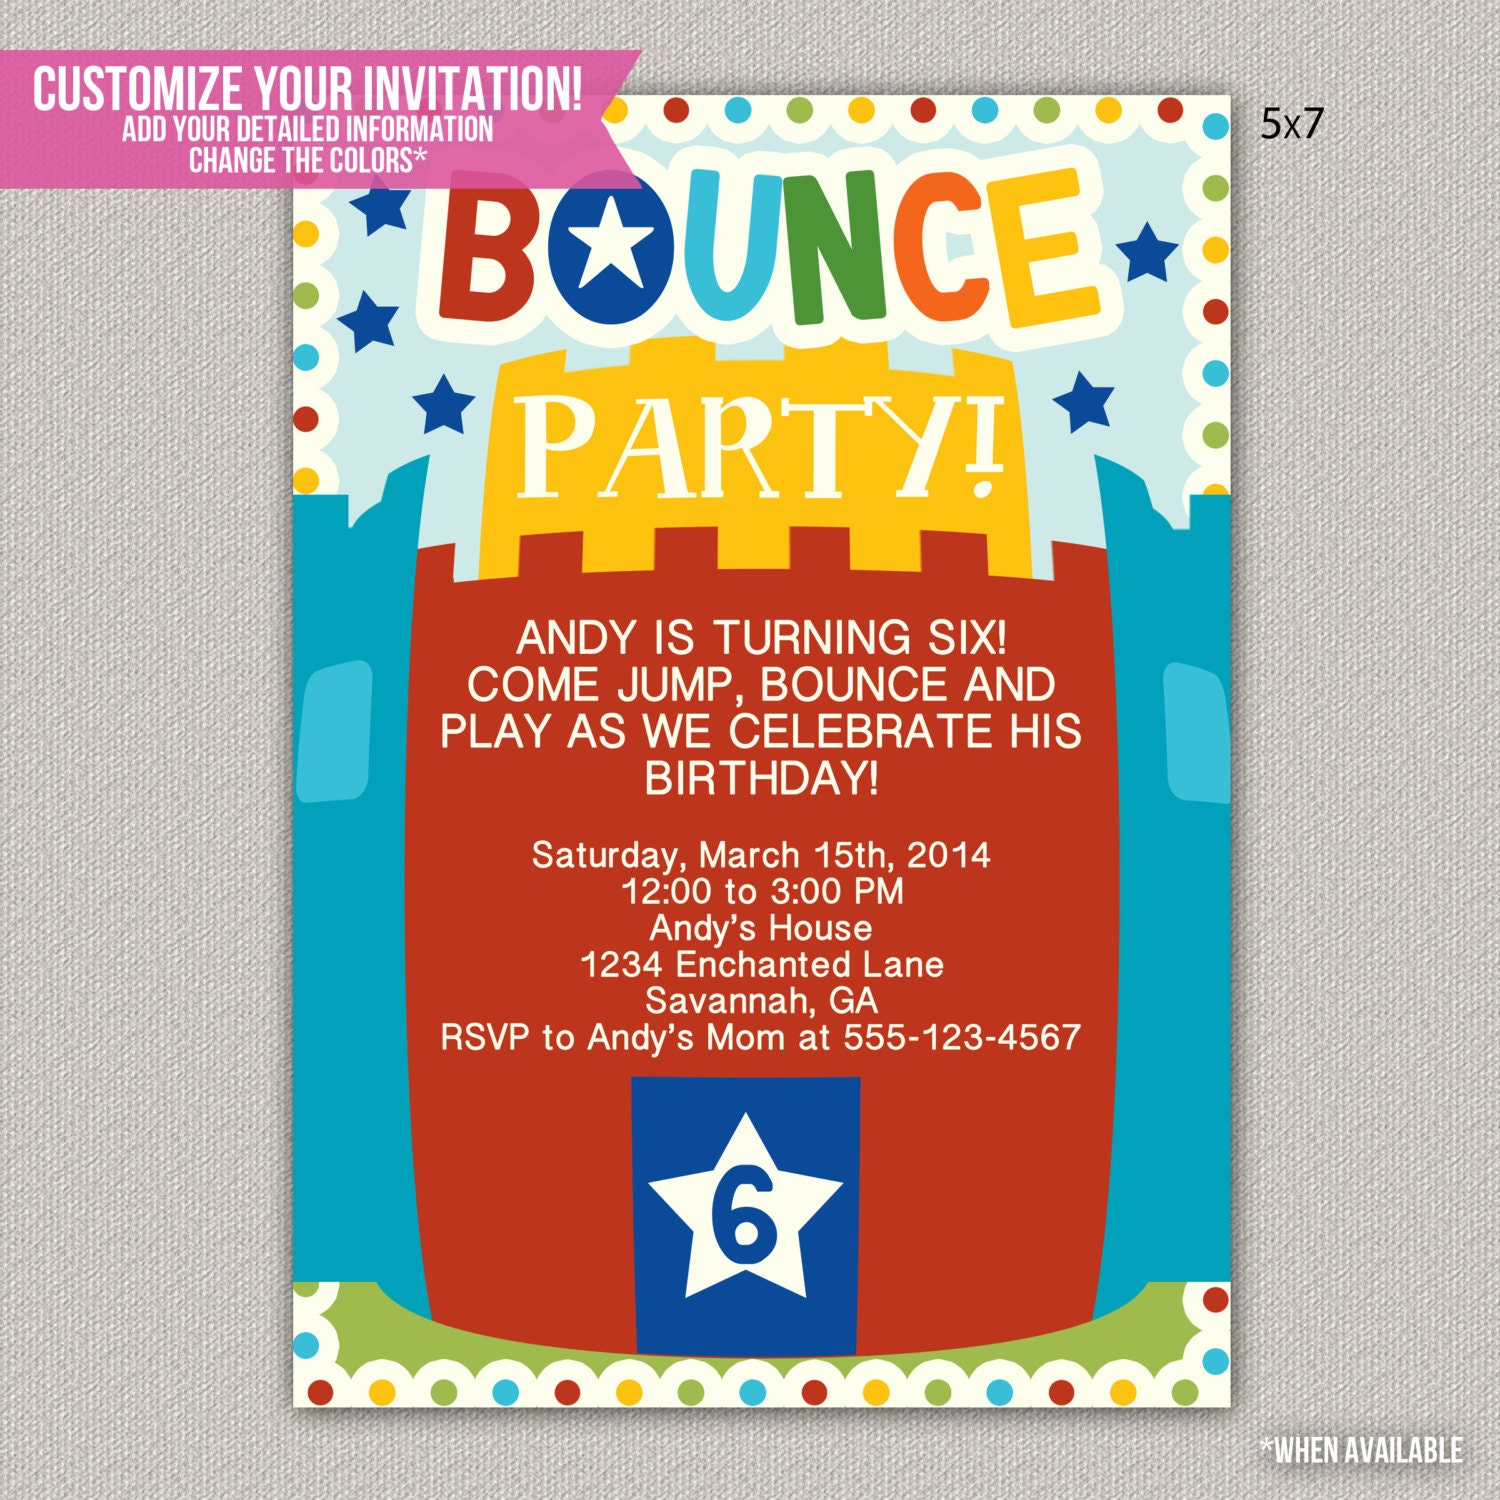 Bounce Party Invitation is best invitation example